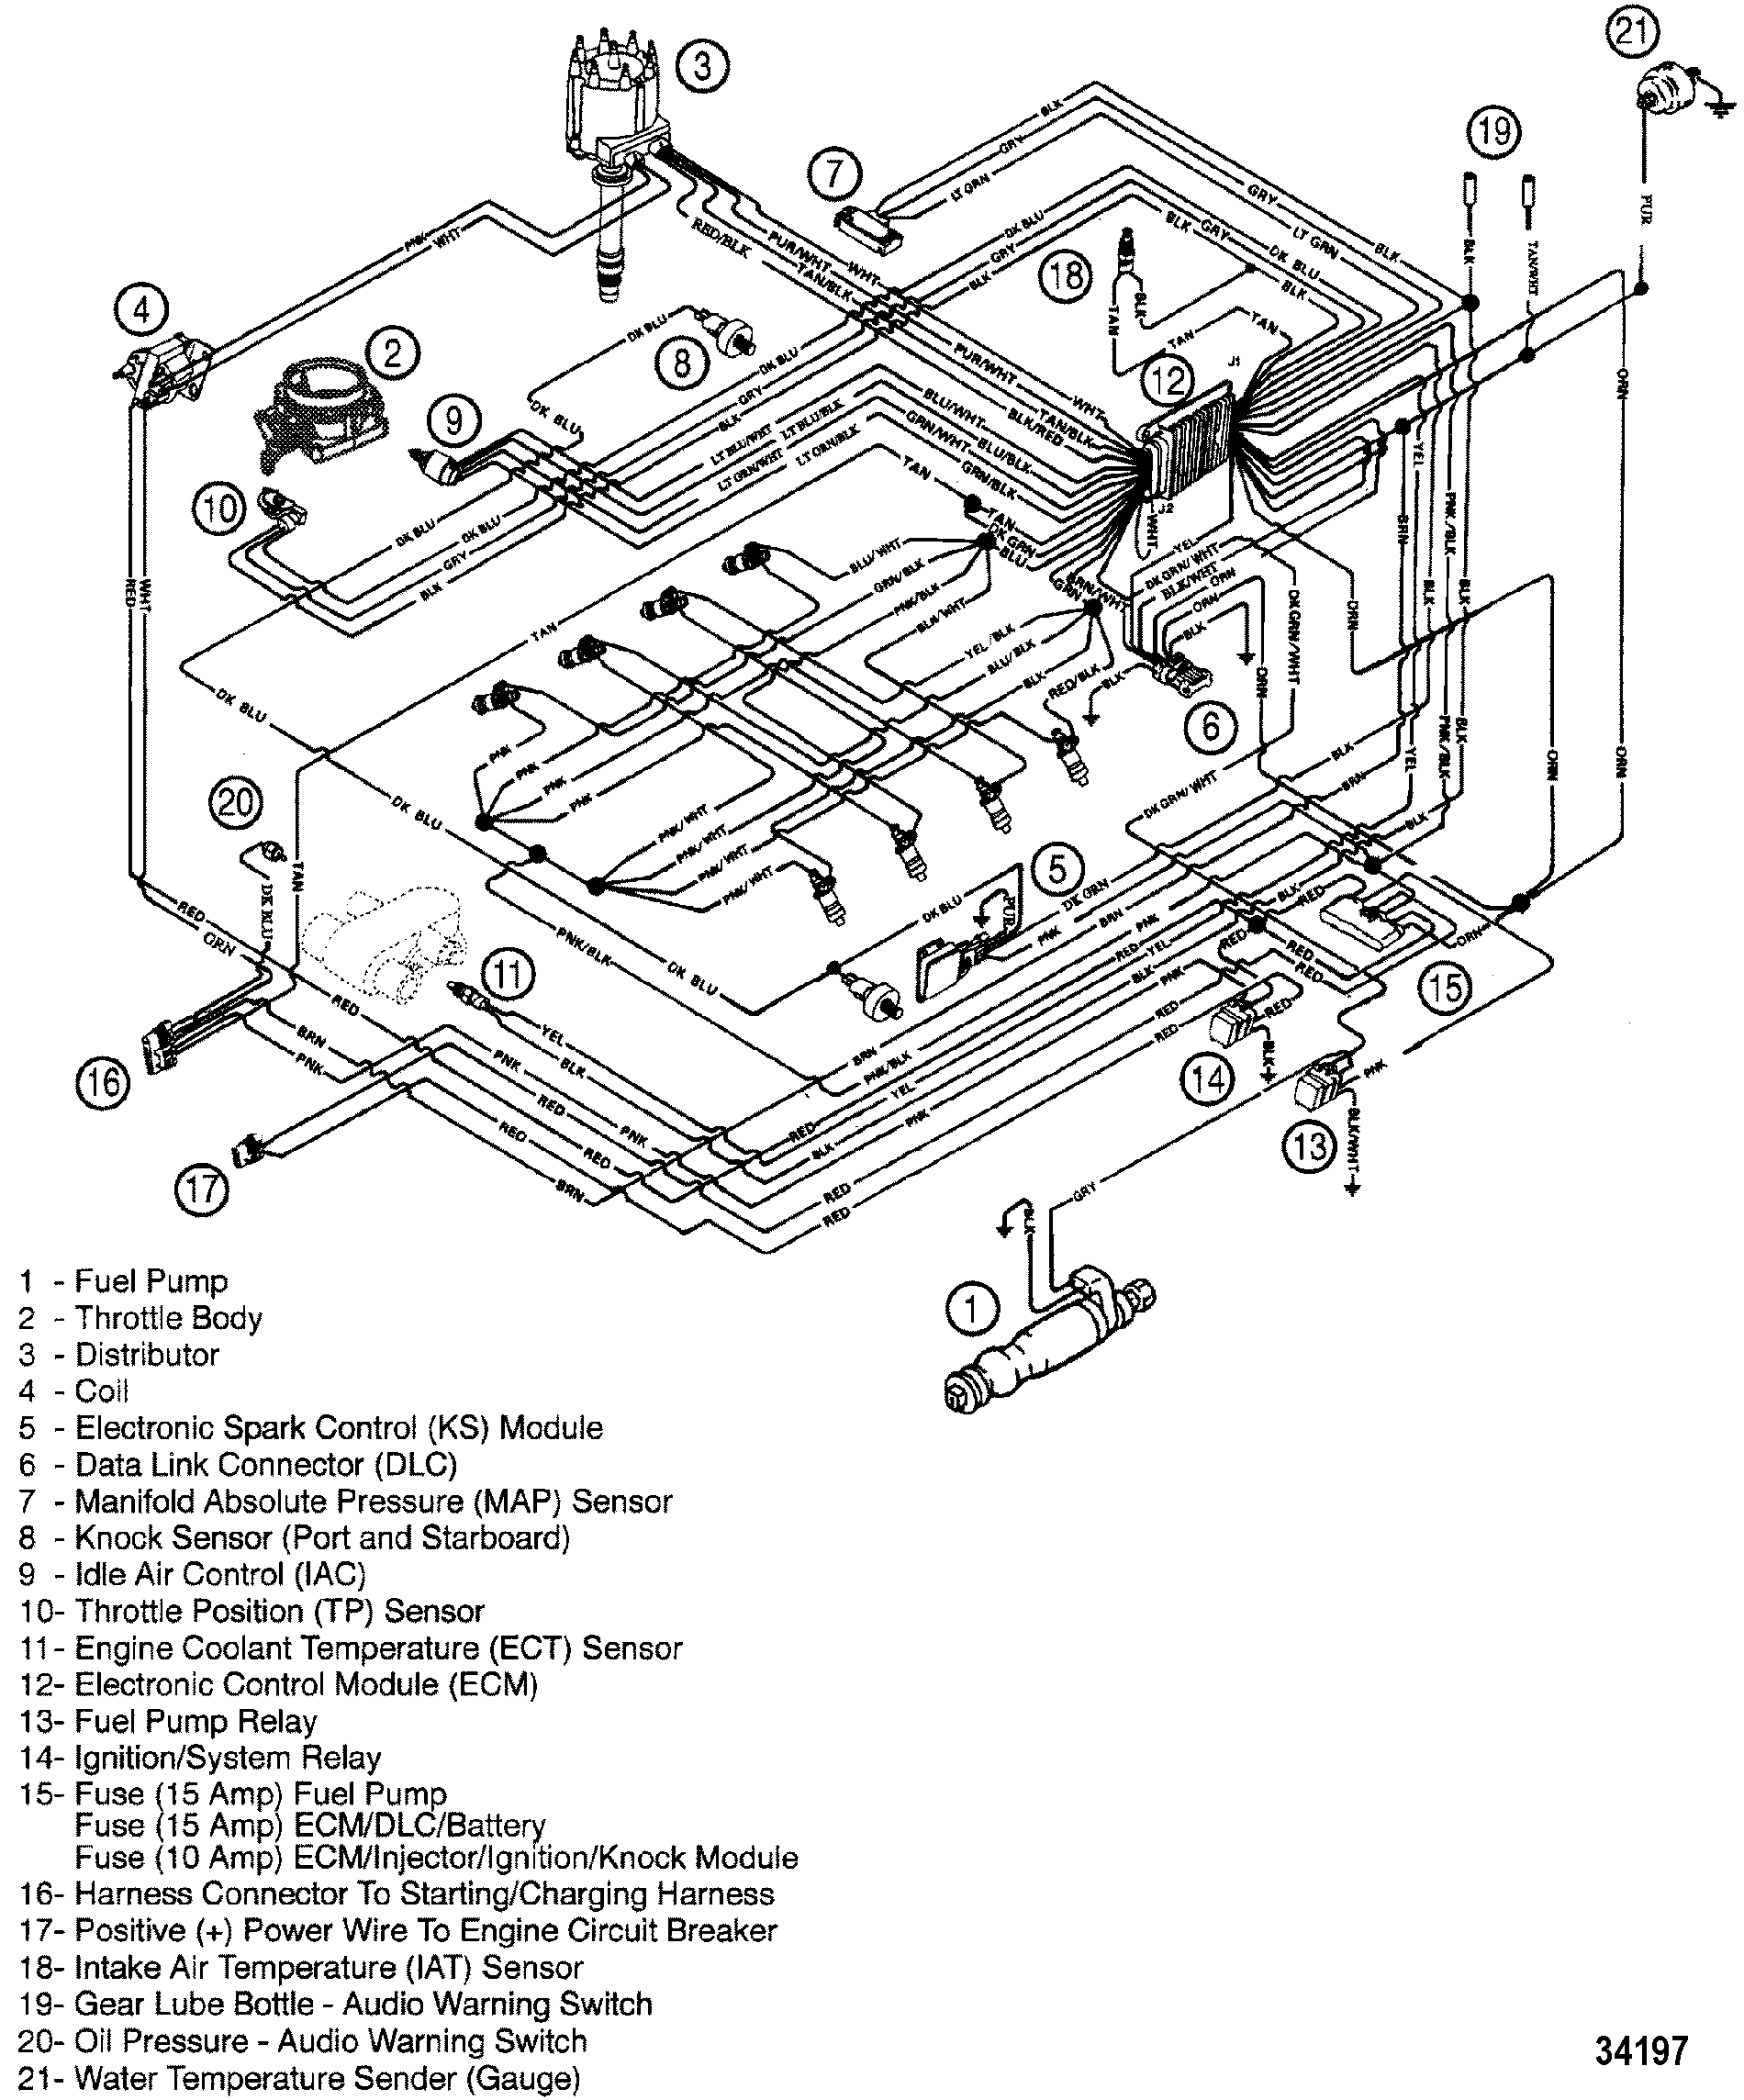 mercruiser 5 7 wiring harness diagram online wiring diagram 7.4 Mercruiser Cooling Diagram 5 7 mercruiser wiring diagram online wiring diagram mercruiser 5 7 wiring harness diagram 5 7 mercruiser